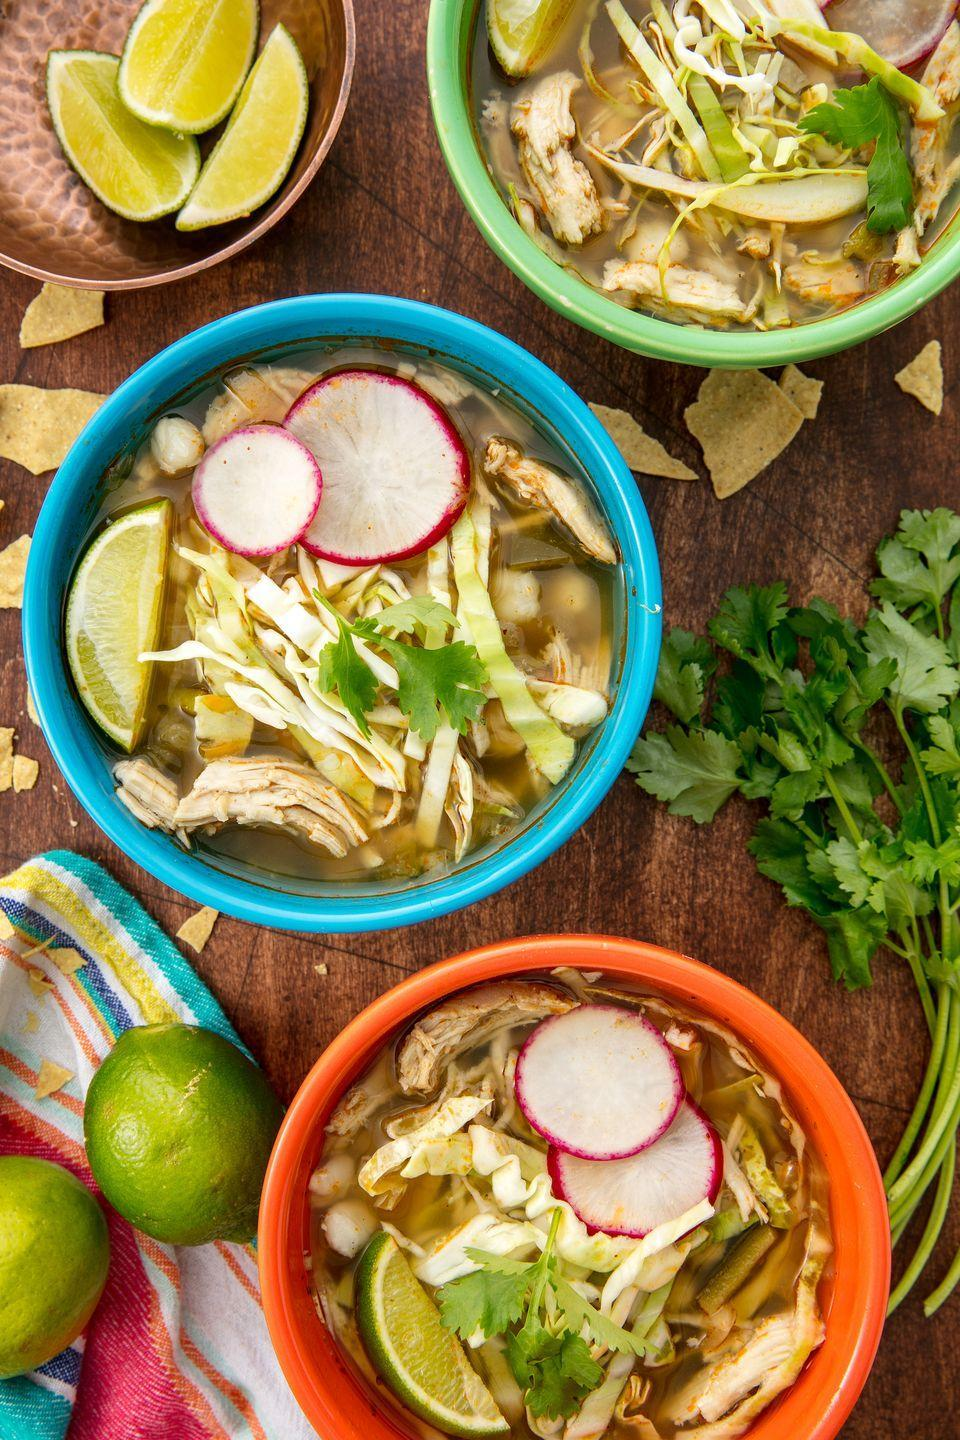 """<p>Enjoy the comfort of this Mexican favorite without any of the work.</p><p>Get the recipe from <a href=""""https://www.delish.com/cooking/recipe-ideas/recipes/a55758/crock-pot-mexican-posole-recipe/"""" rel=""""nofollow noopener"""" target=""""_blank"""" data-ylk=""""slk:Delish"""" class=""""link rapid-noclick-resp"""">Delish</a>.</p>"""